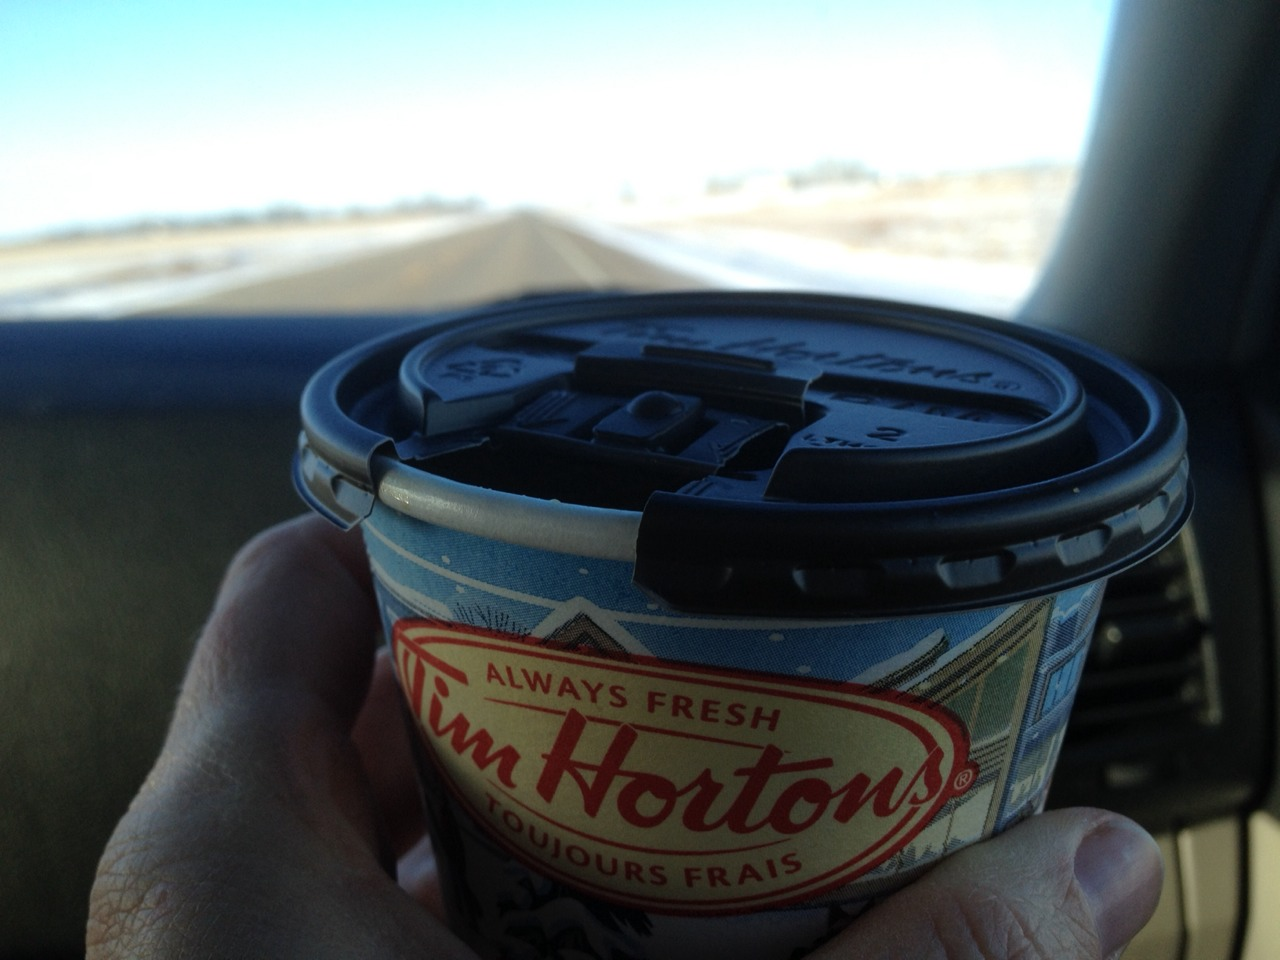 Nothing makes you want a Tim Hortons coffee more than not being able to have one. This double double tasted of home.